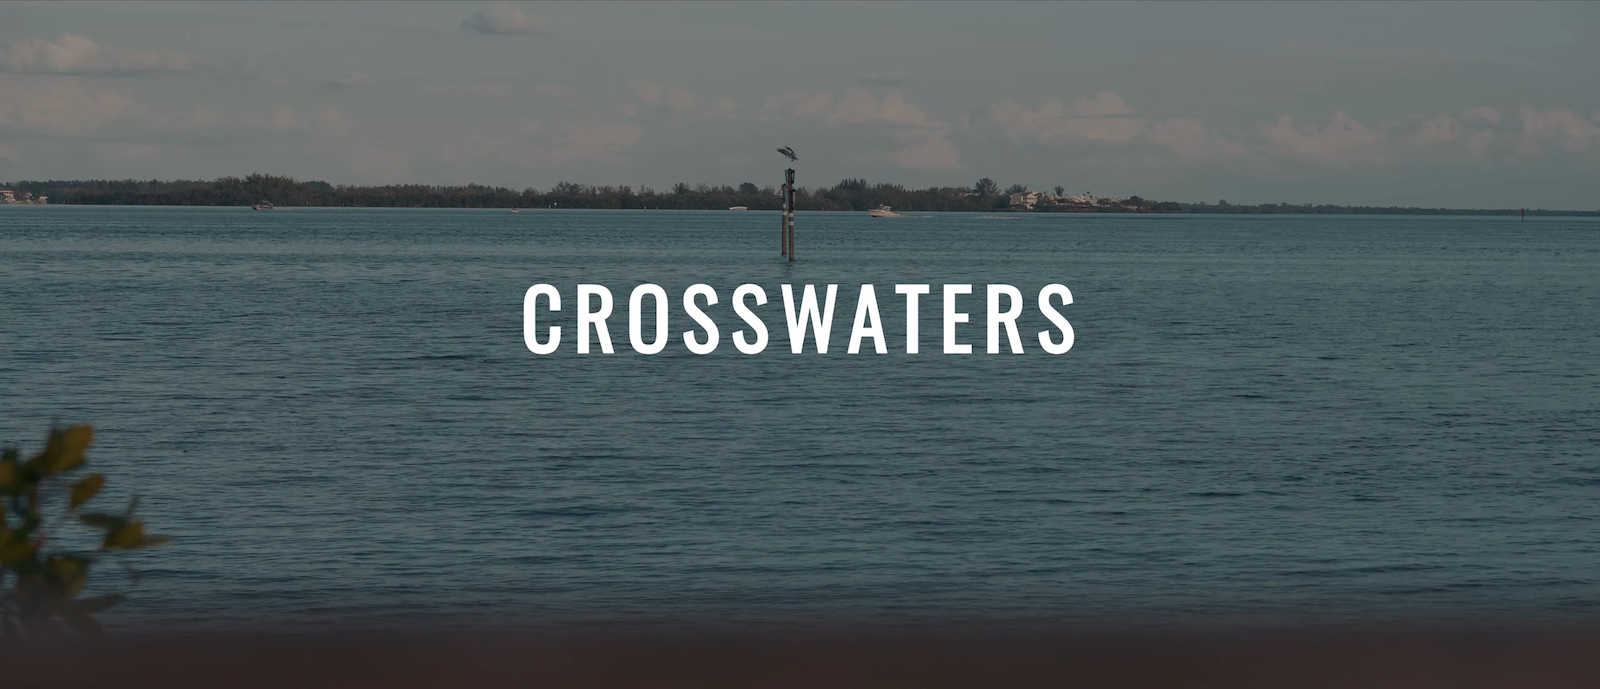 "Image of a lake from the perspective of someone right above the water. There is a shoreline in the distance. The words ""CROSSWATERS"" is centered on the image in white."